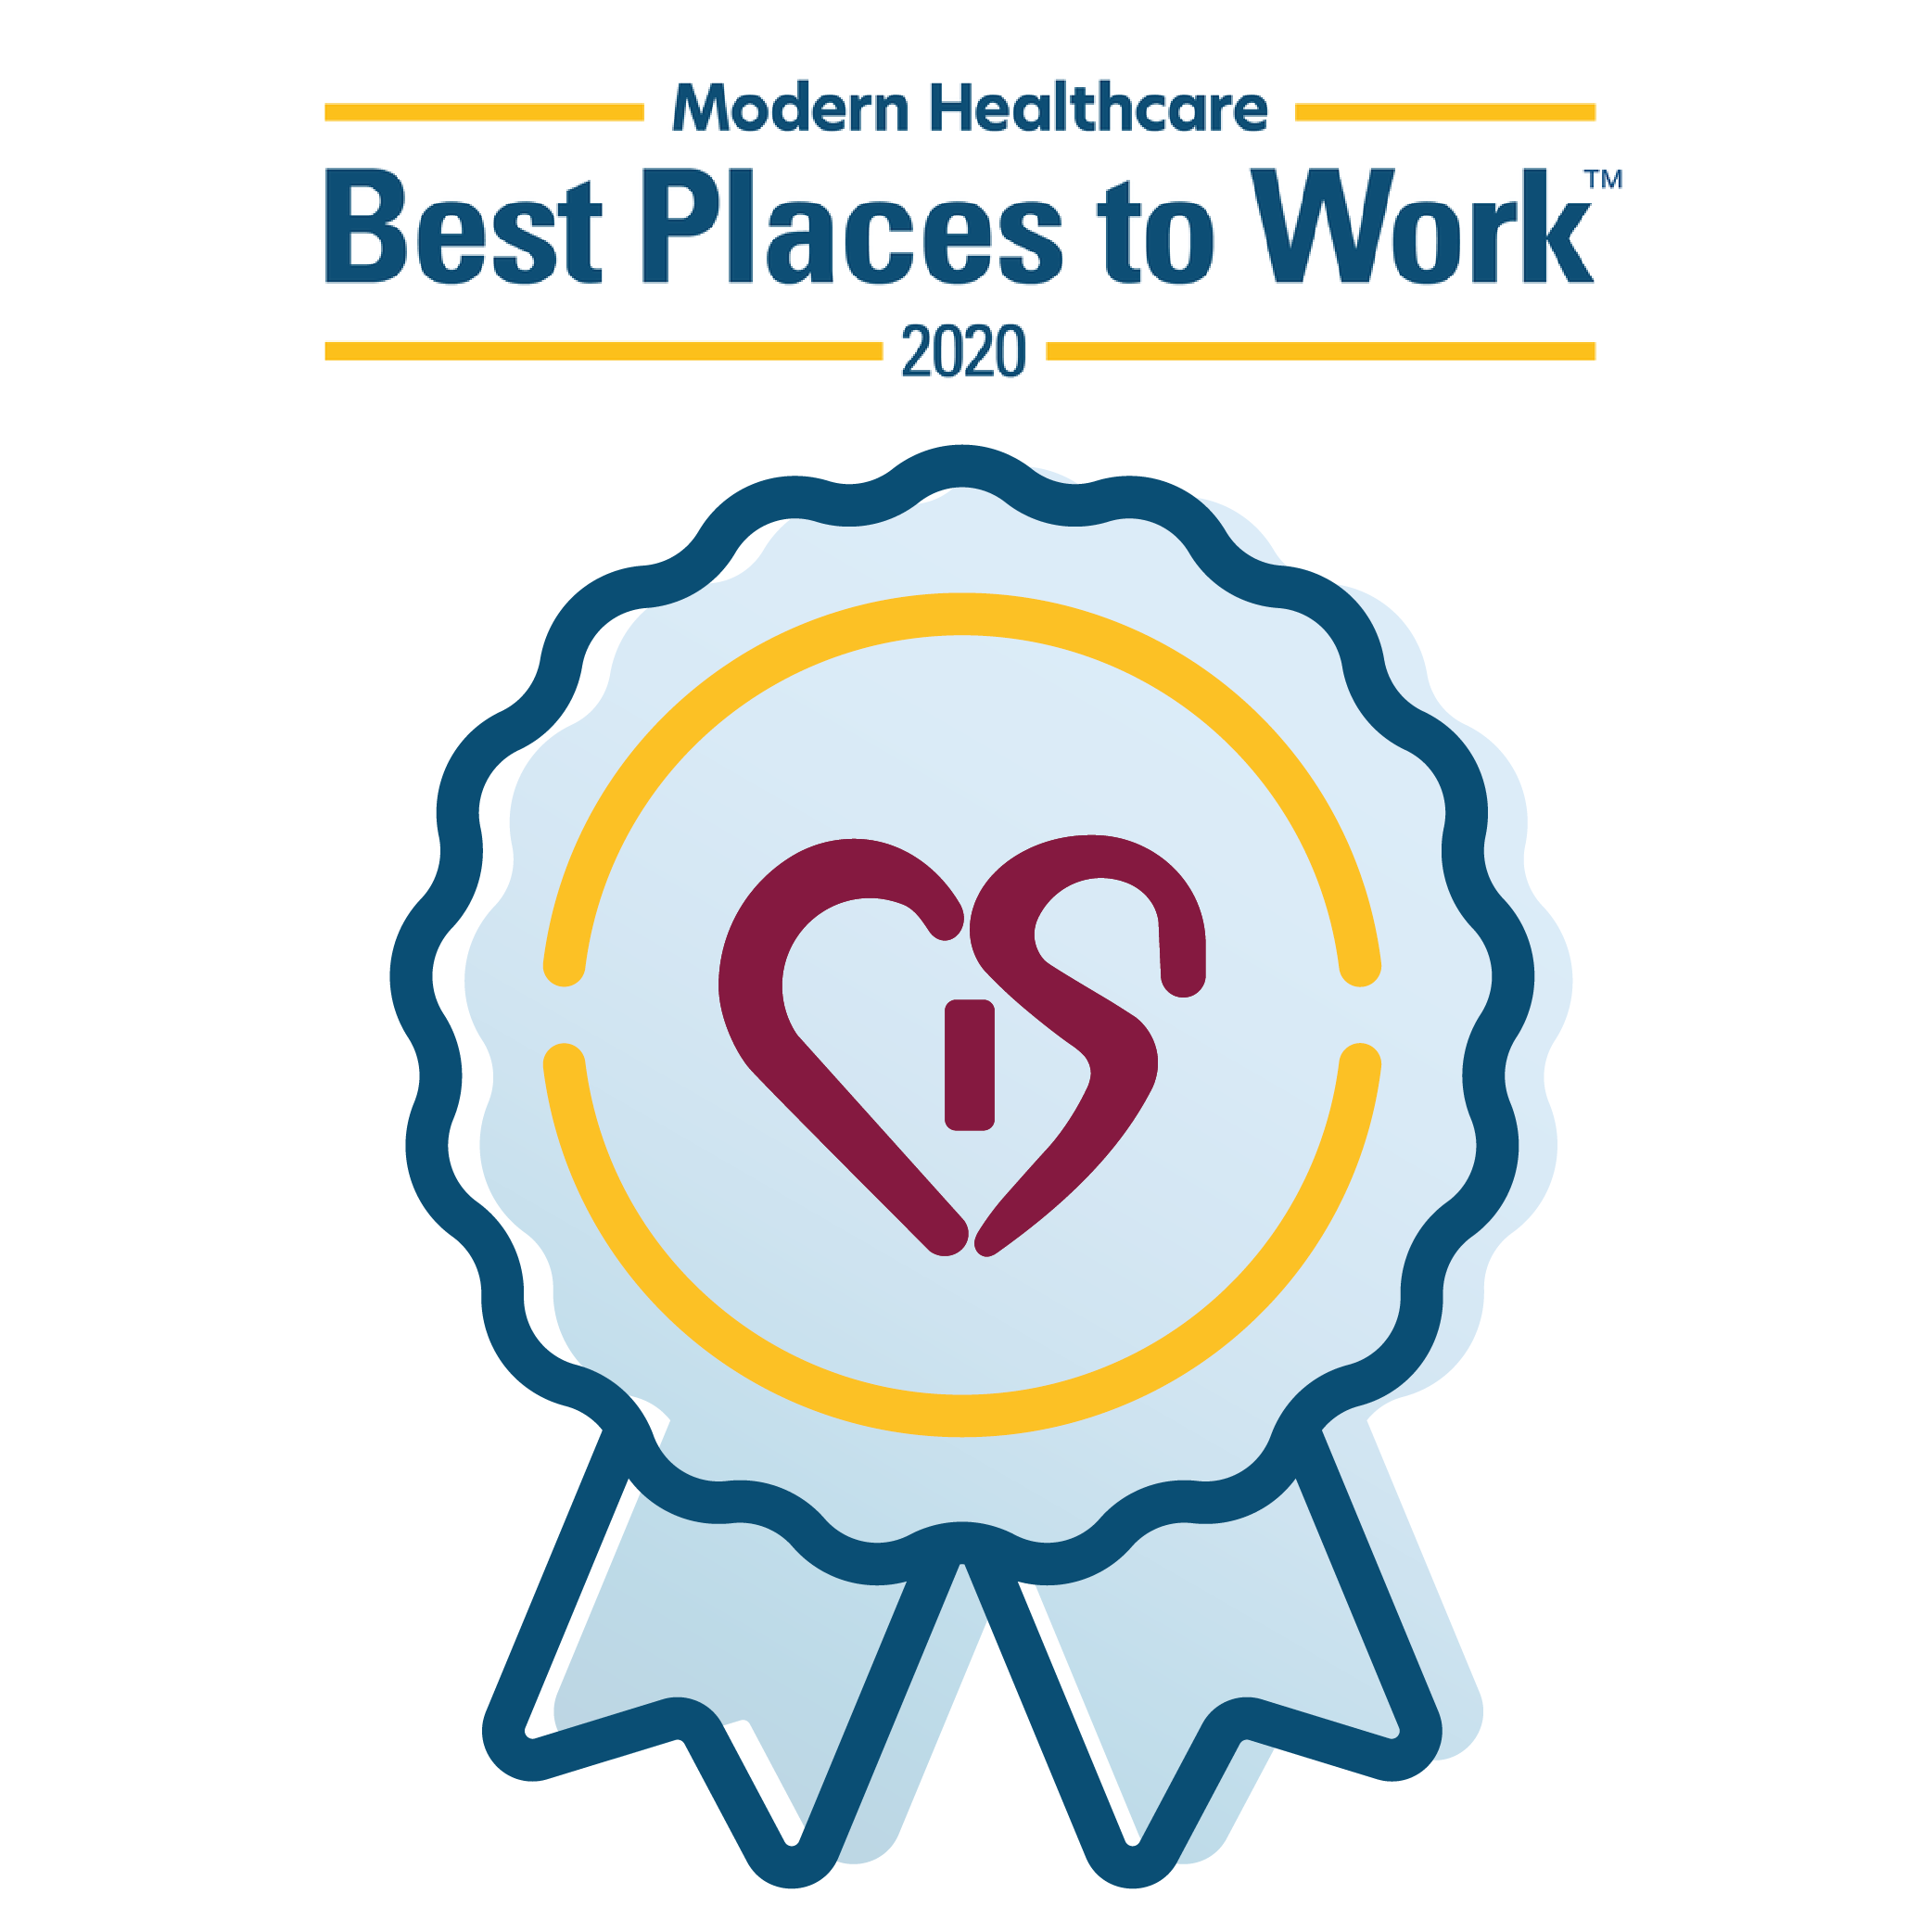 Cis Is Named Best Place To Work In Healthcare In 2020 Best Places To Work Health Care Best